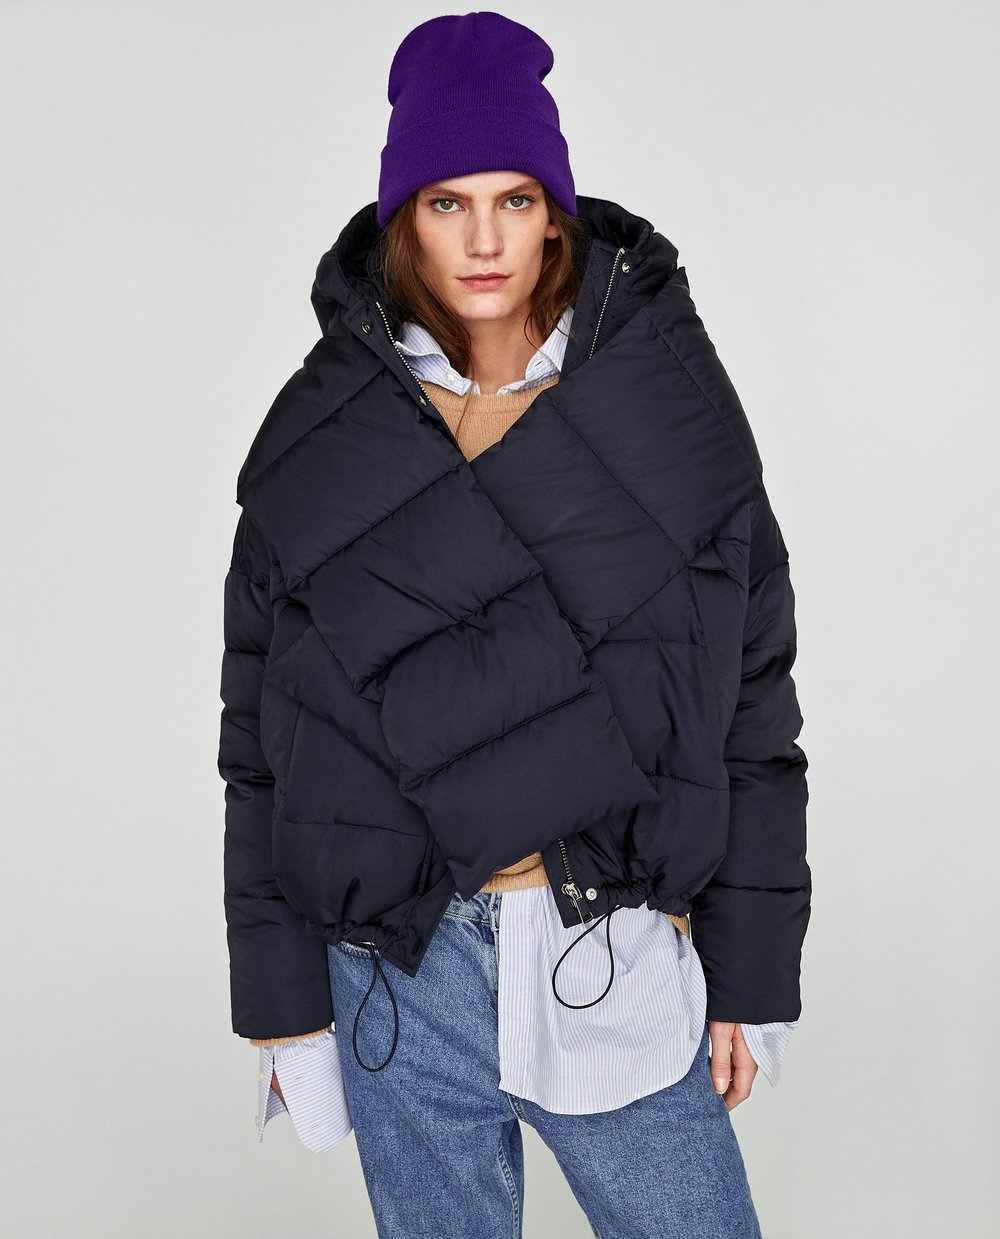 - QUILTED JACKET WITH SCARF / SALE PRICE $80